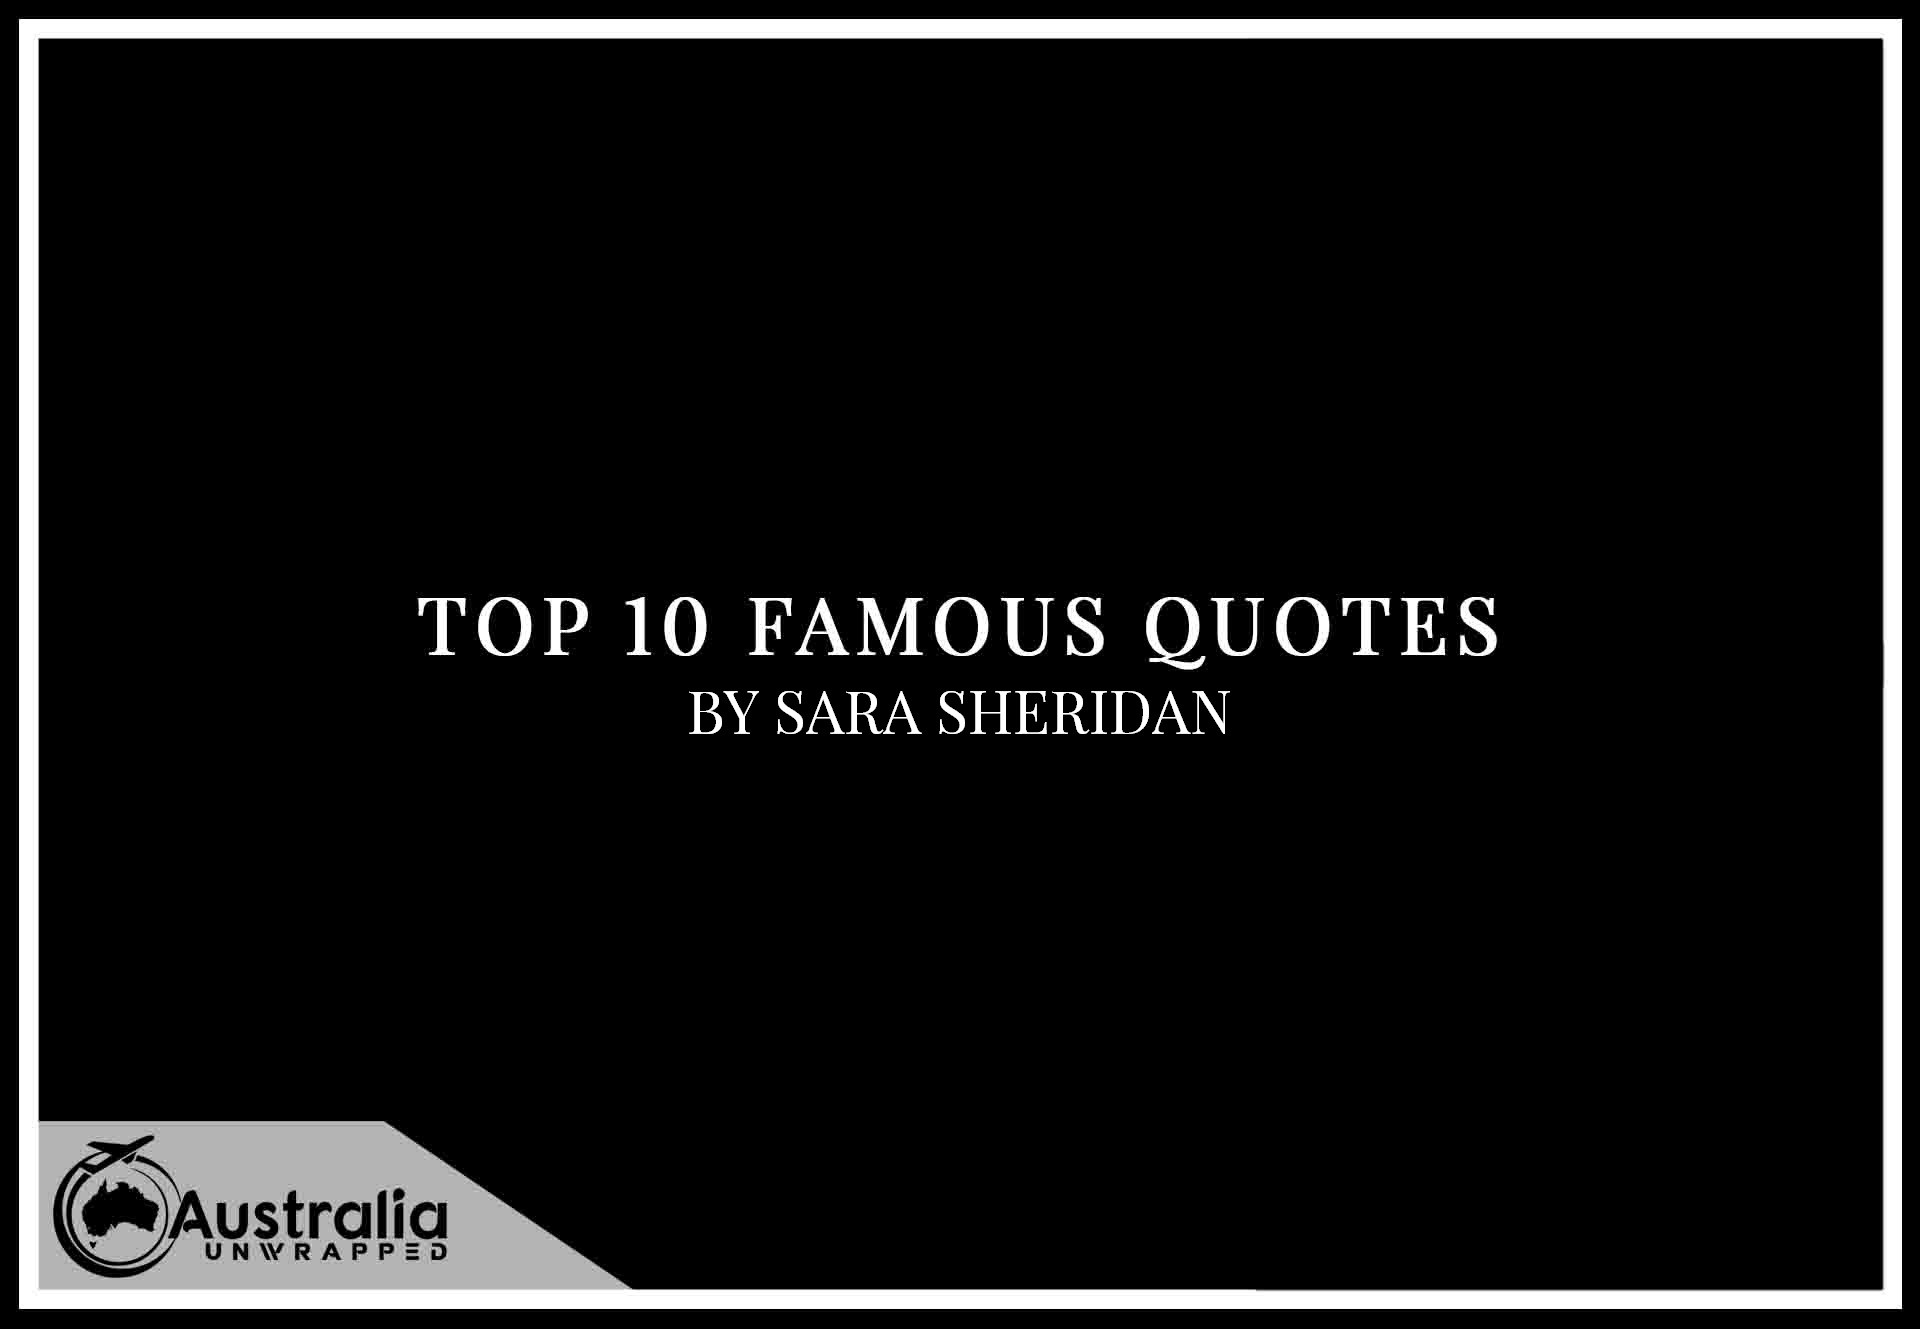 Top 10 Famous Quotes by Author Sara Sheridan